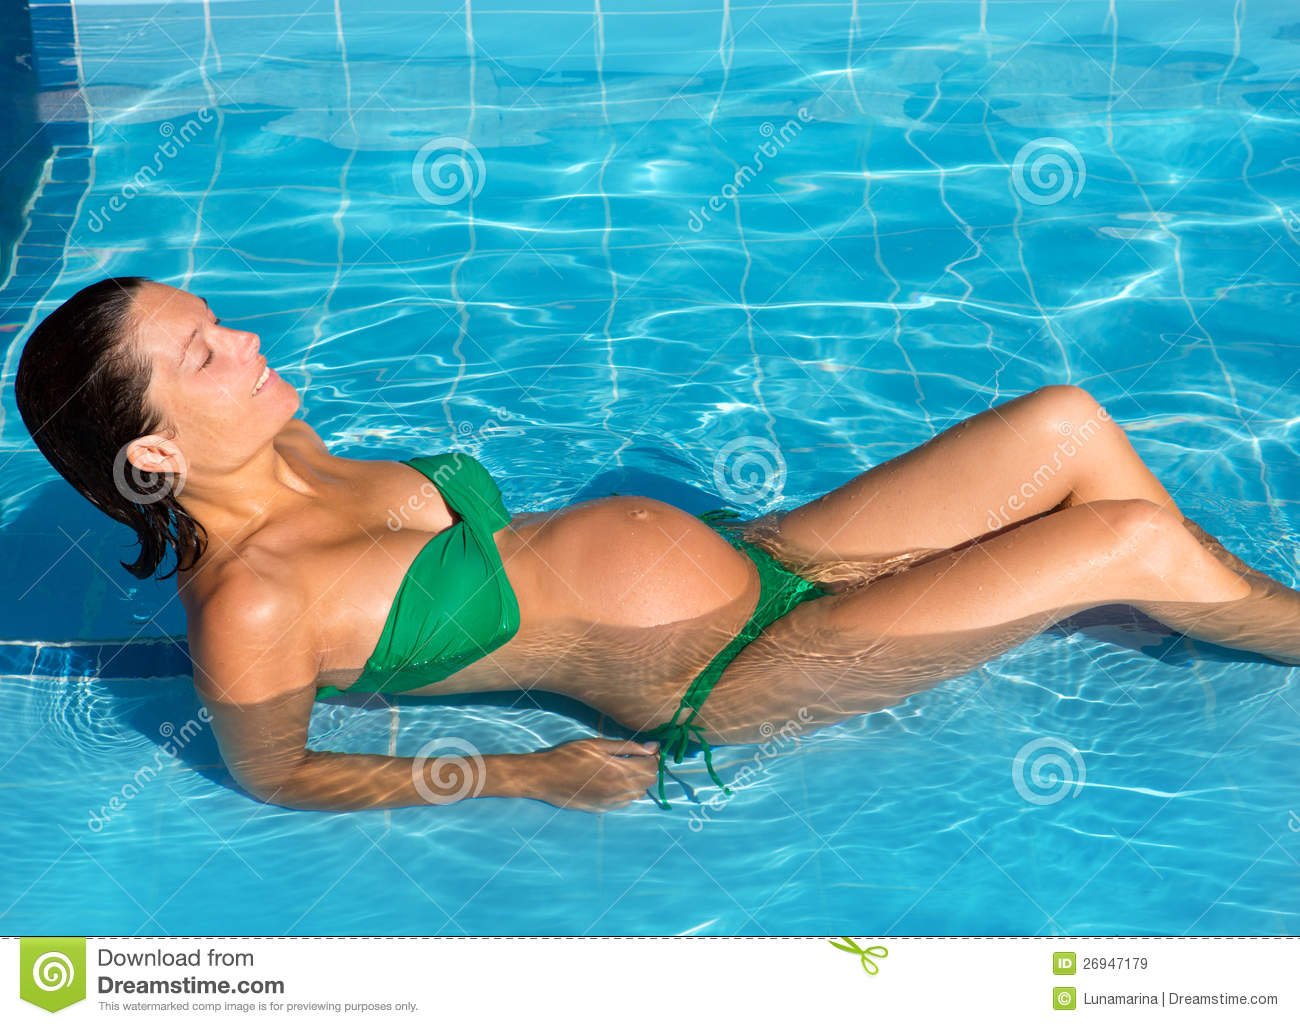 68033f5e58f49 Beautiful Pregnant Woman Sun Tanning At Blue Pool Stock Image ...